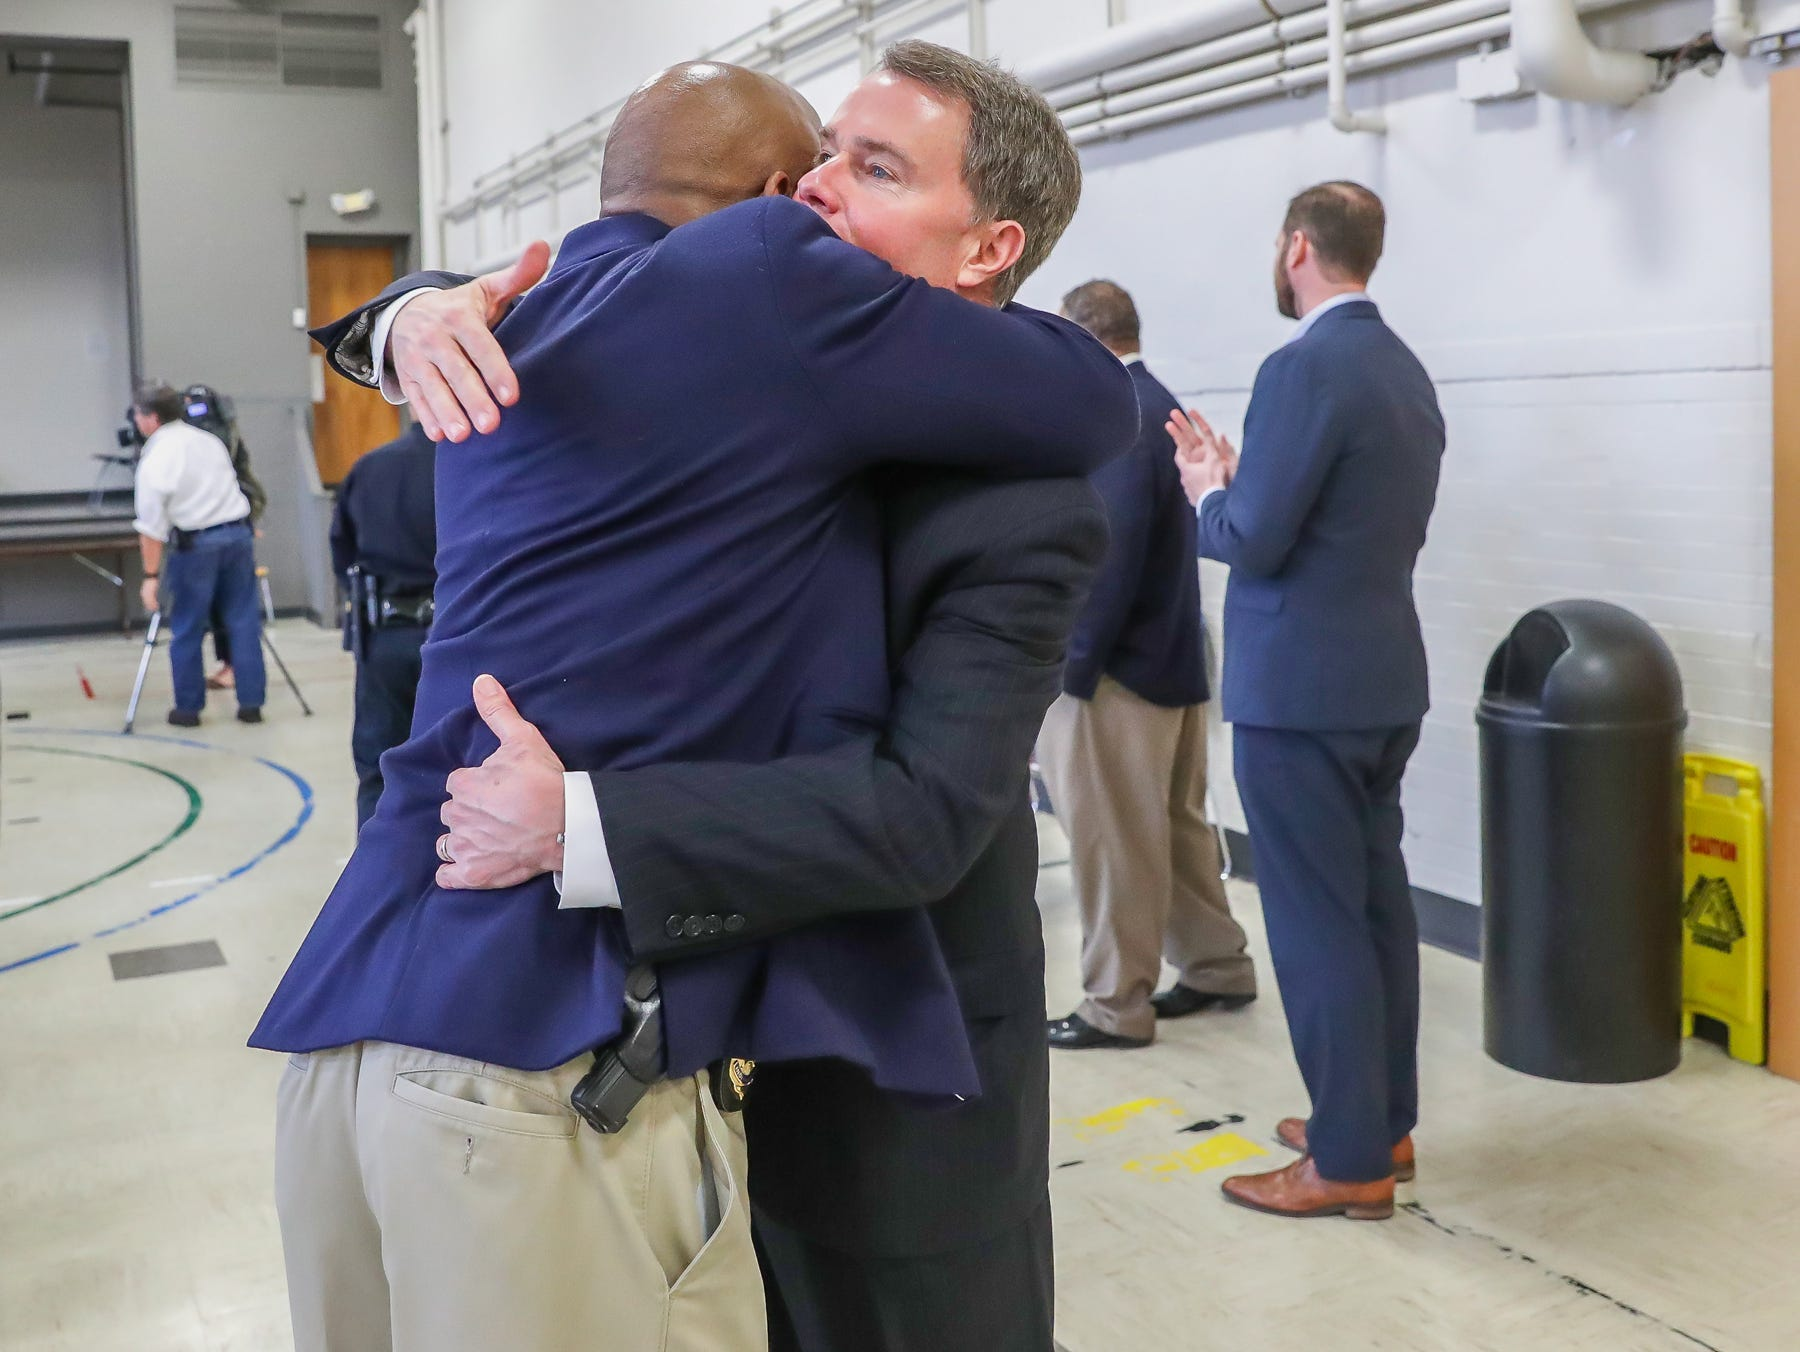 Indianapolis Mayor Joe Hogsett (right) hugs Capt. John H. Walton Jr., a 36-year IMPD veteran who was recently named director of Diversity and Inclusion, after the announcement on the start of a process to study body worn cameras on IMPD officers during a press conference at the Edna Martin Christian Center in Indianapolis on Monday, Feb. 4, 2019.